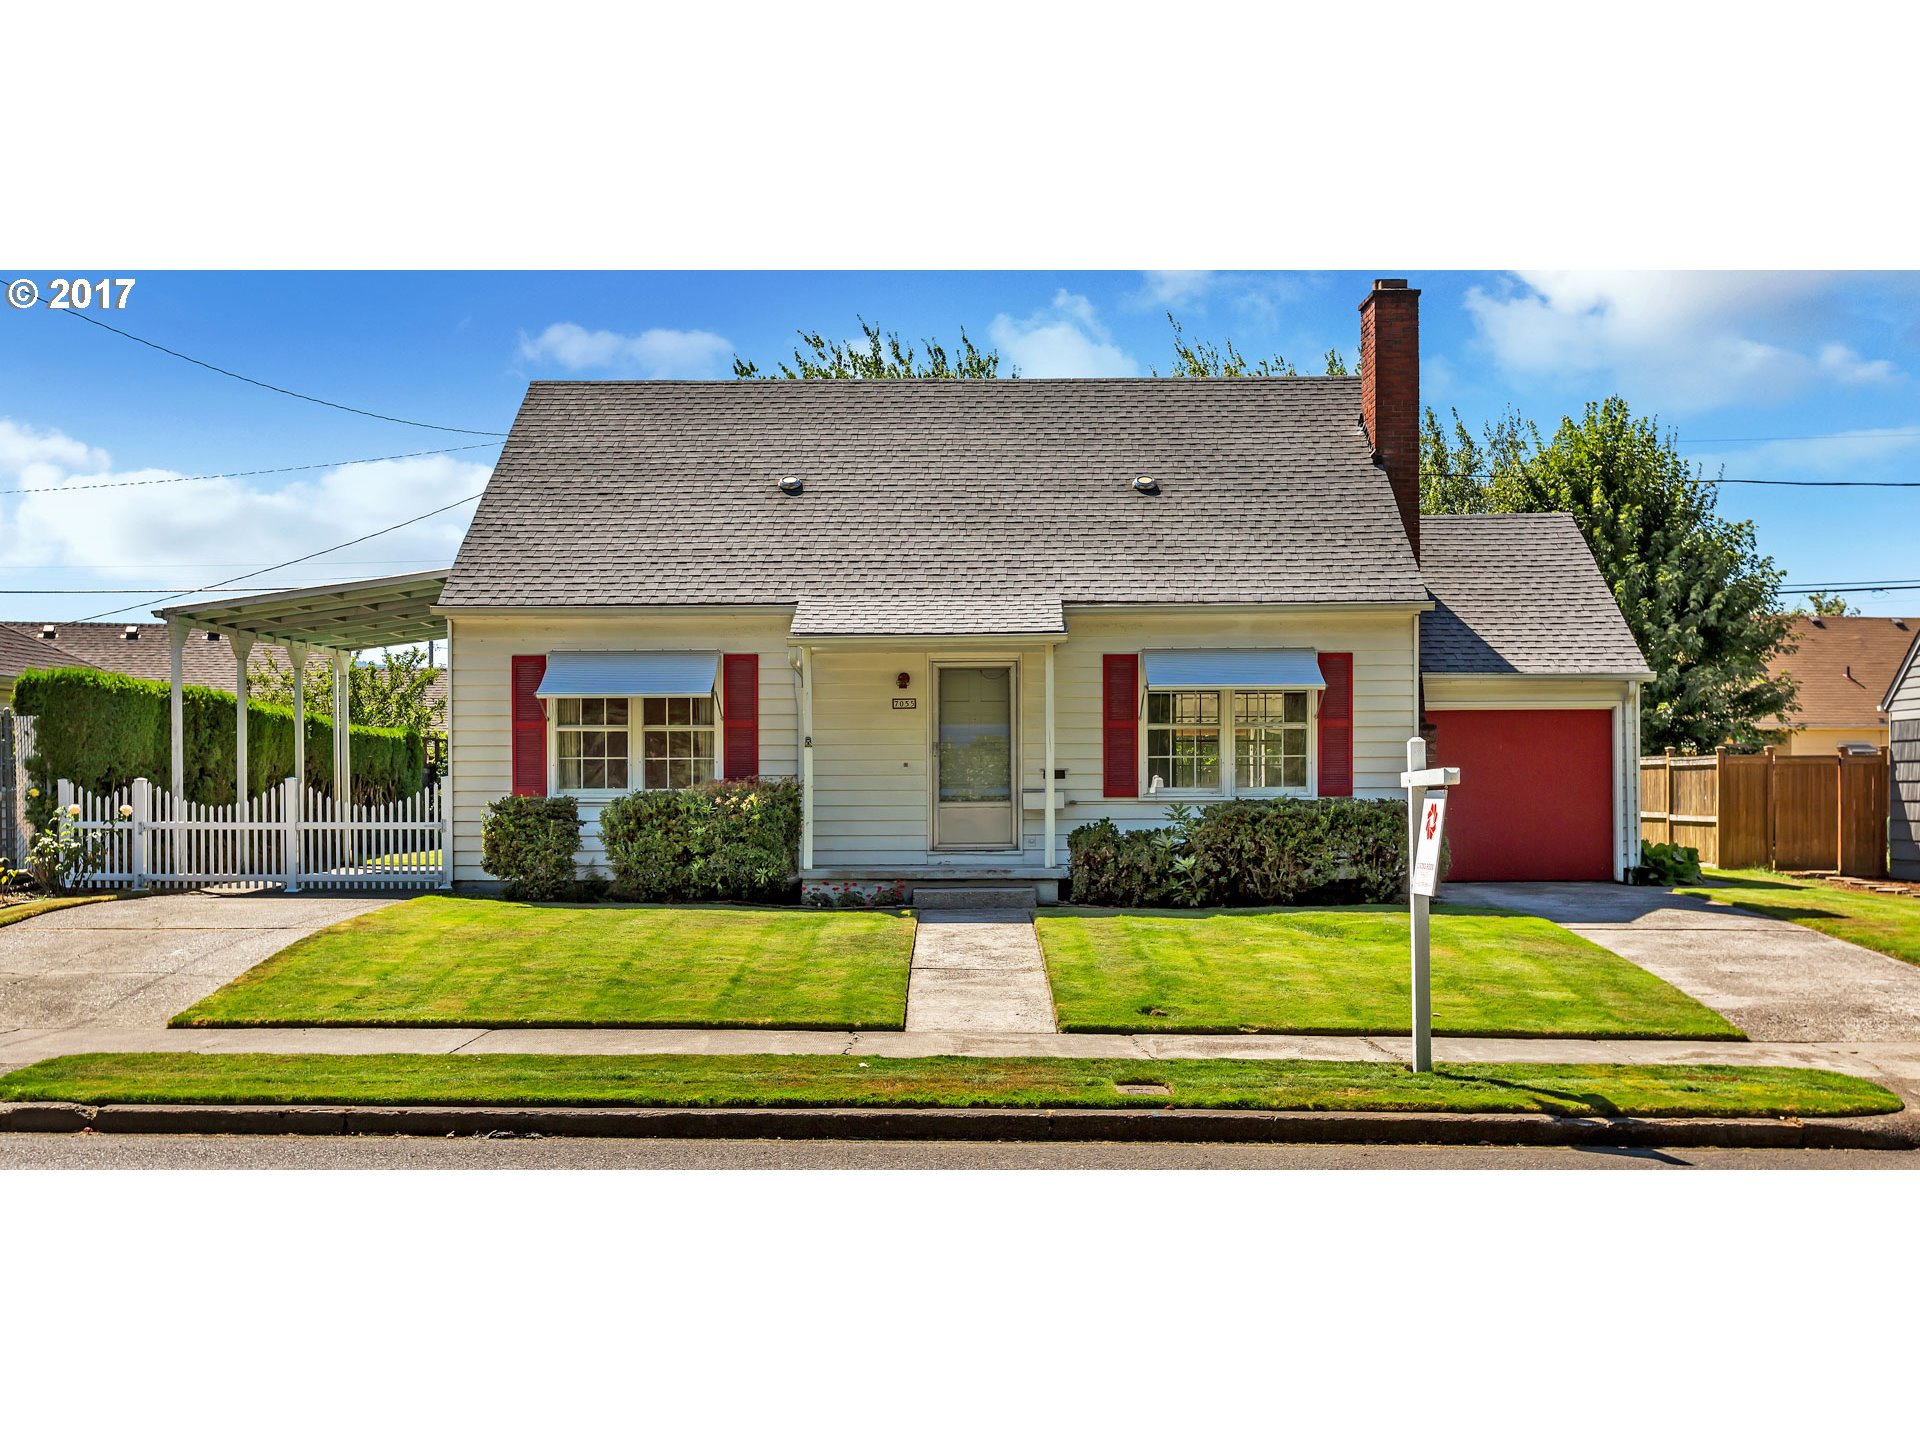 Coveted University Park / Mocks Crest area with Columbia Park out your front door, this lovingly cared for home is ready for your personal touch. Charming built-ins, hardwood floors, gracious sized rooms, large windows w/lots light, covered patio and private yard are just a few of the features. High ceiling in basement=room to expand. Newer sewer, roof, water heater and updated panel! Minutes to downtown, Green Zebra, Adidas and U of P.